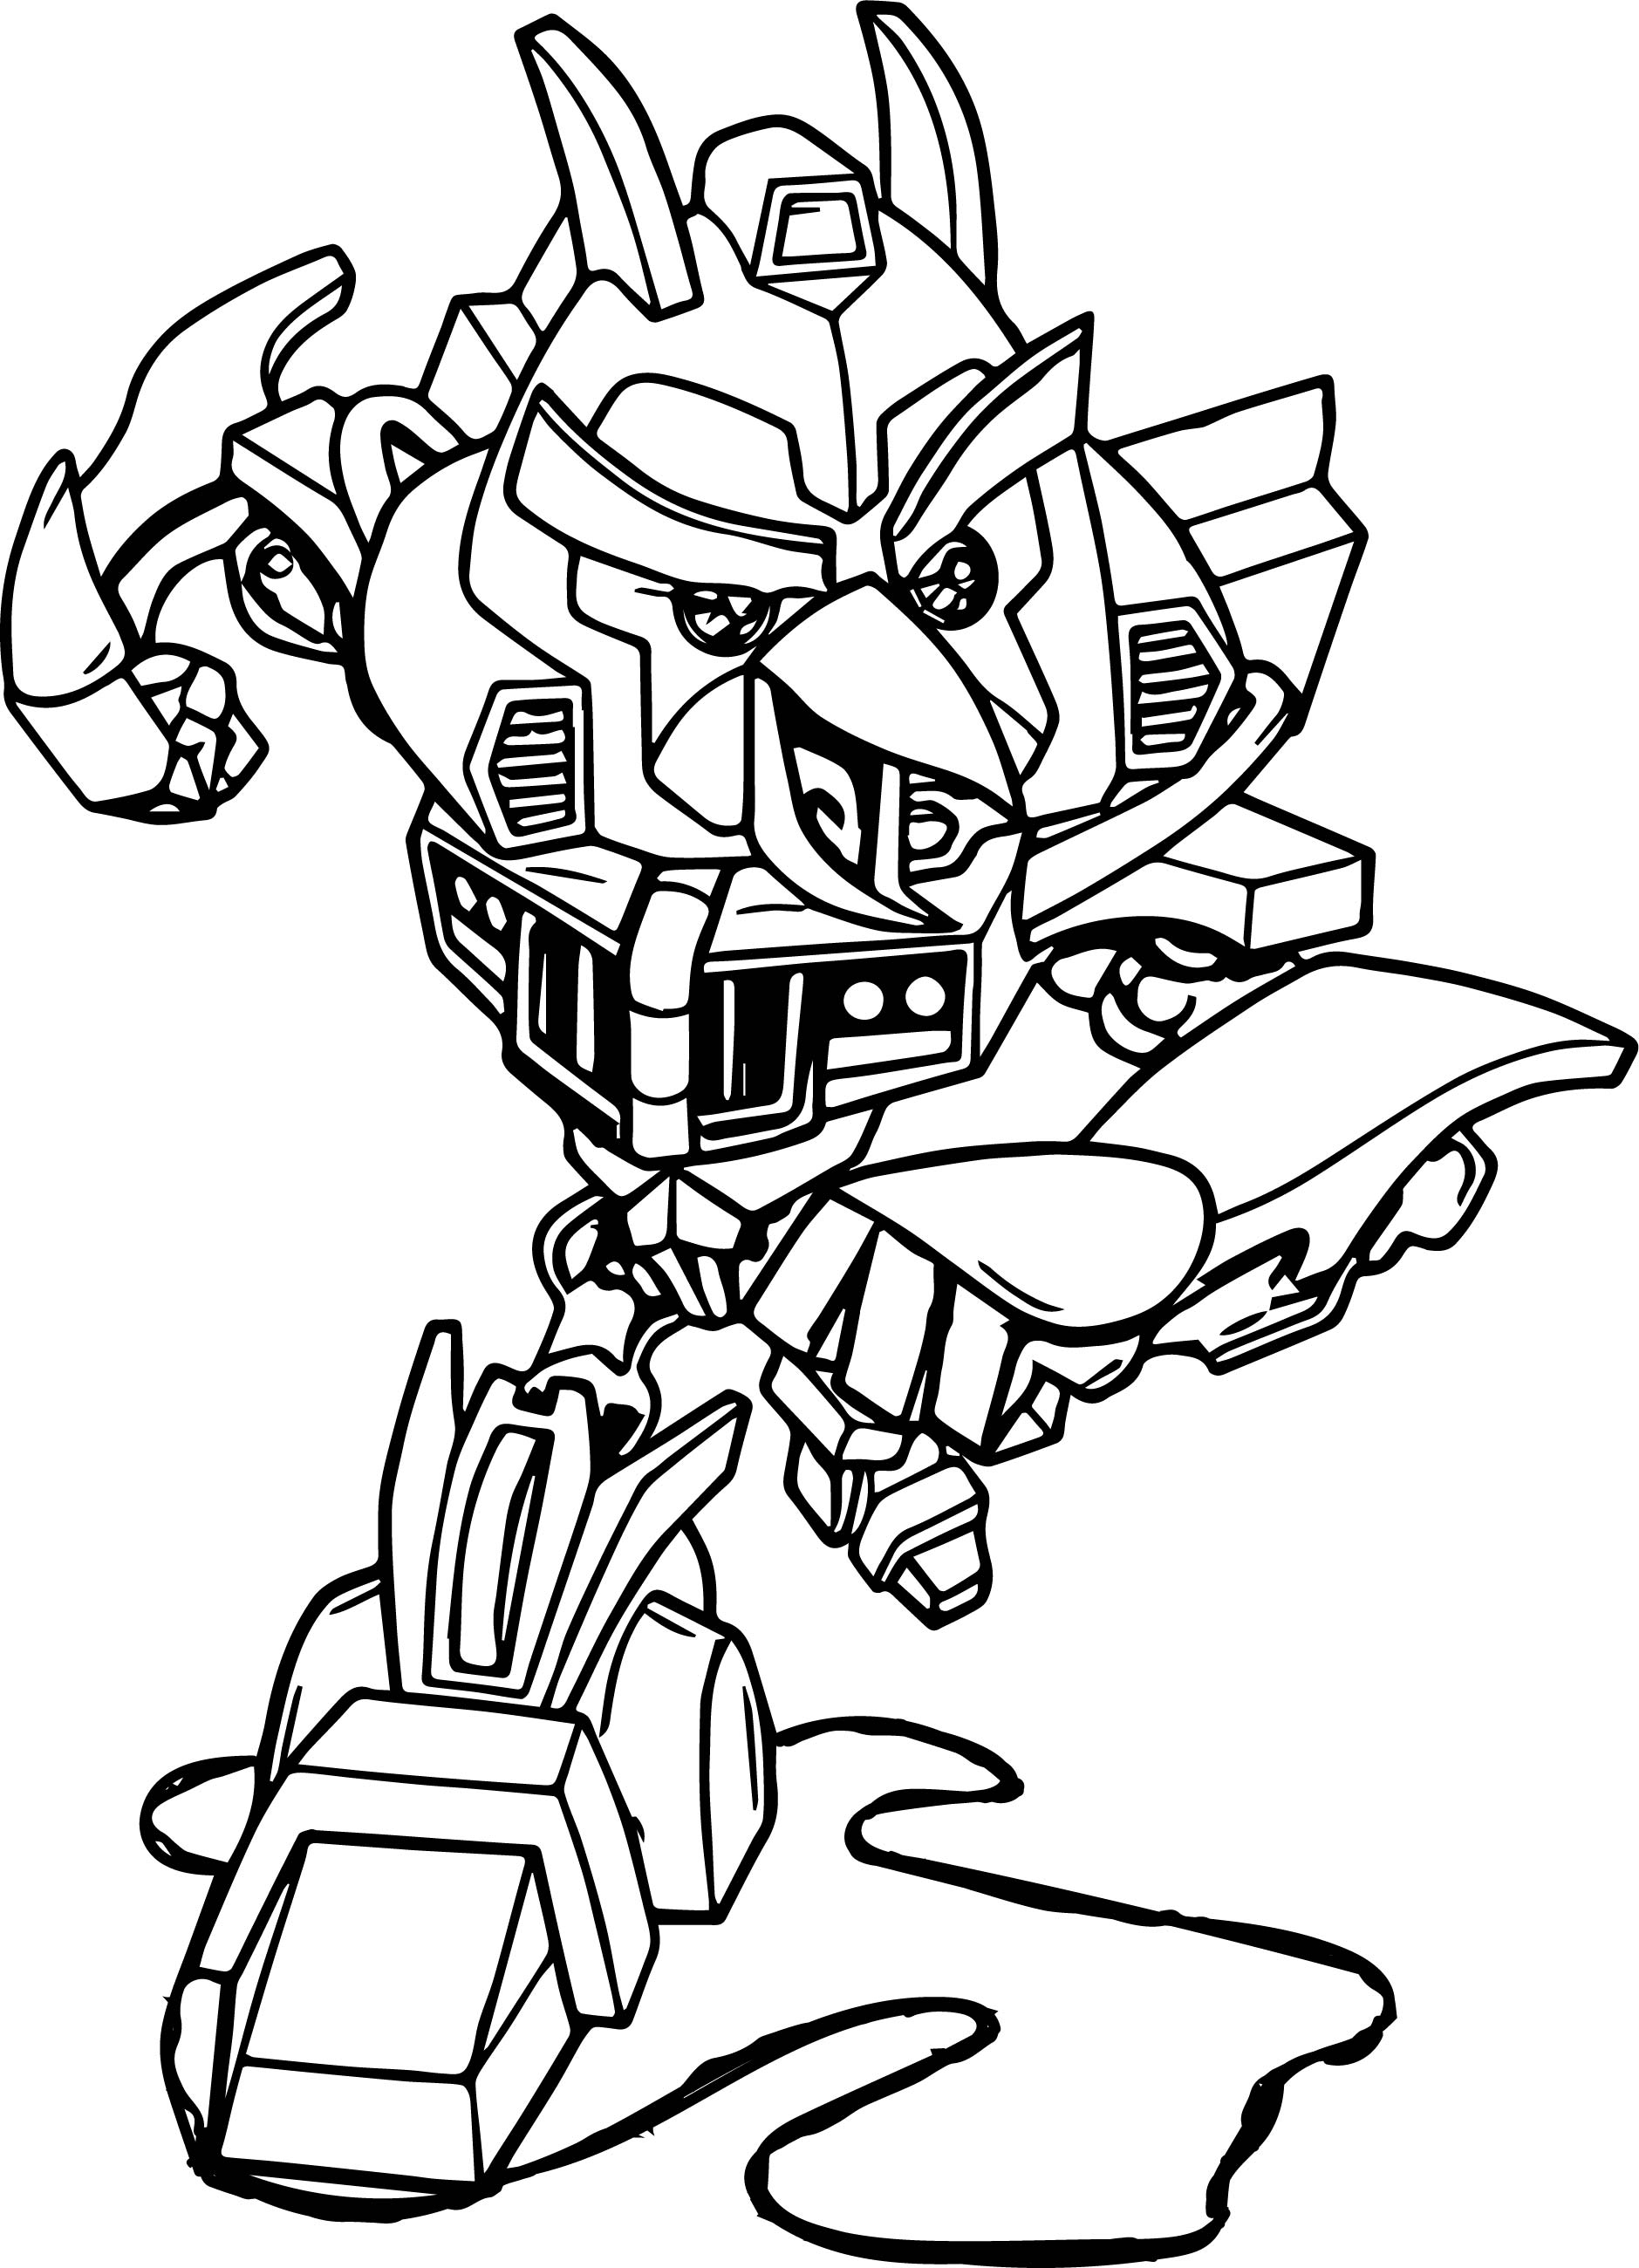 Power Ranger Ninja Storm Megazord Coloring Pages